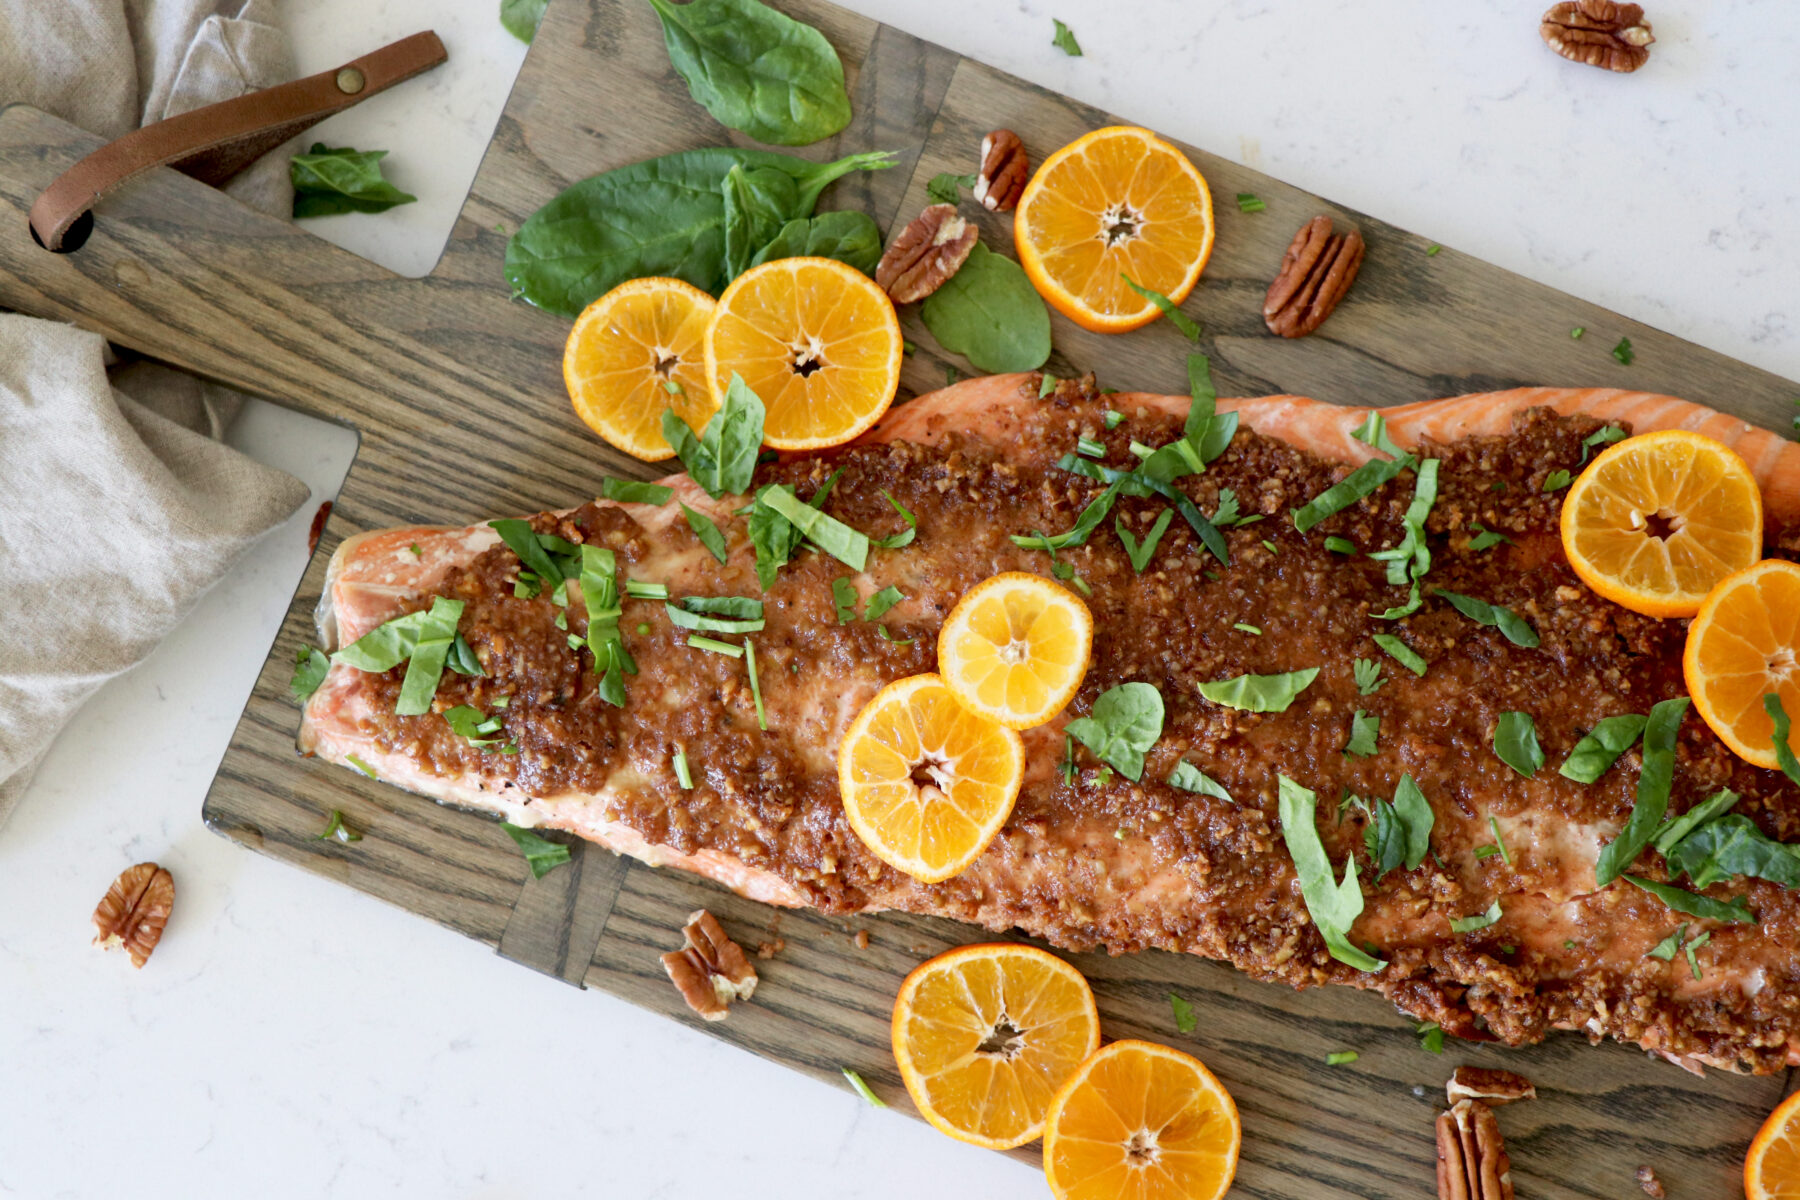 Pecan crusted salmon on grey wooden slab with orange slices.